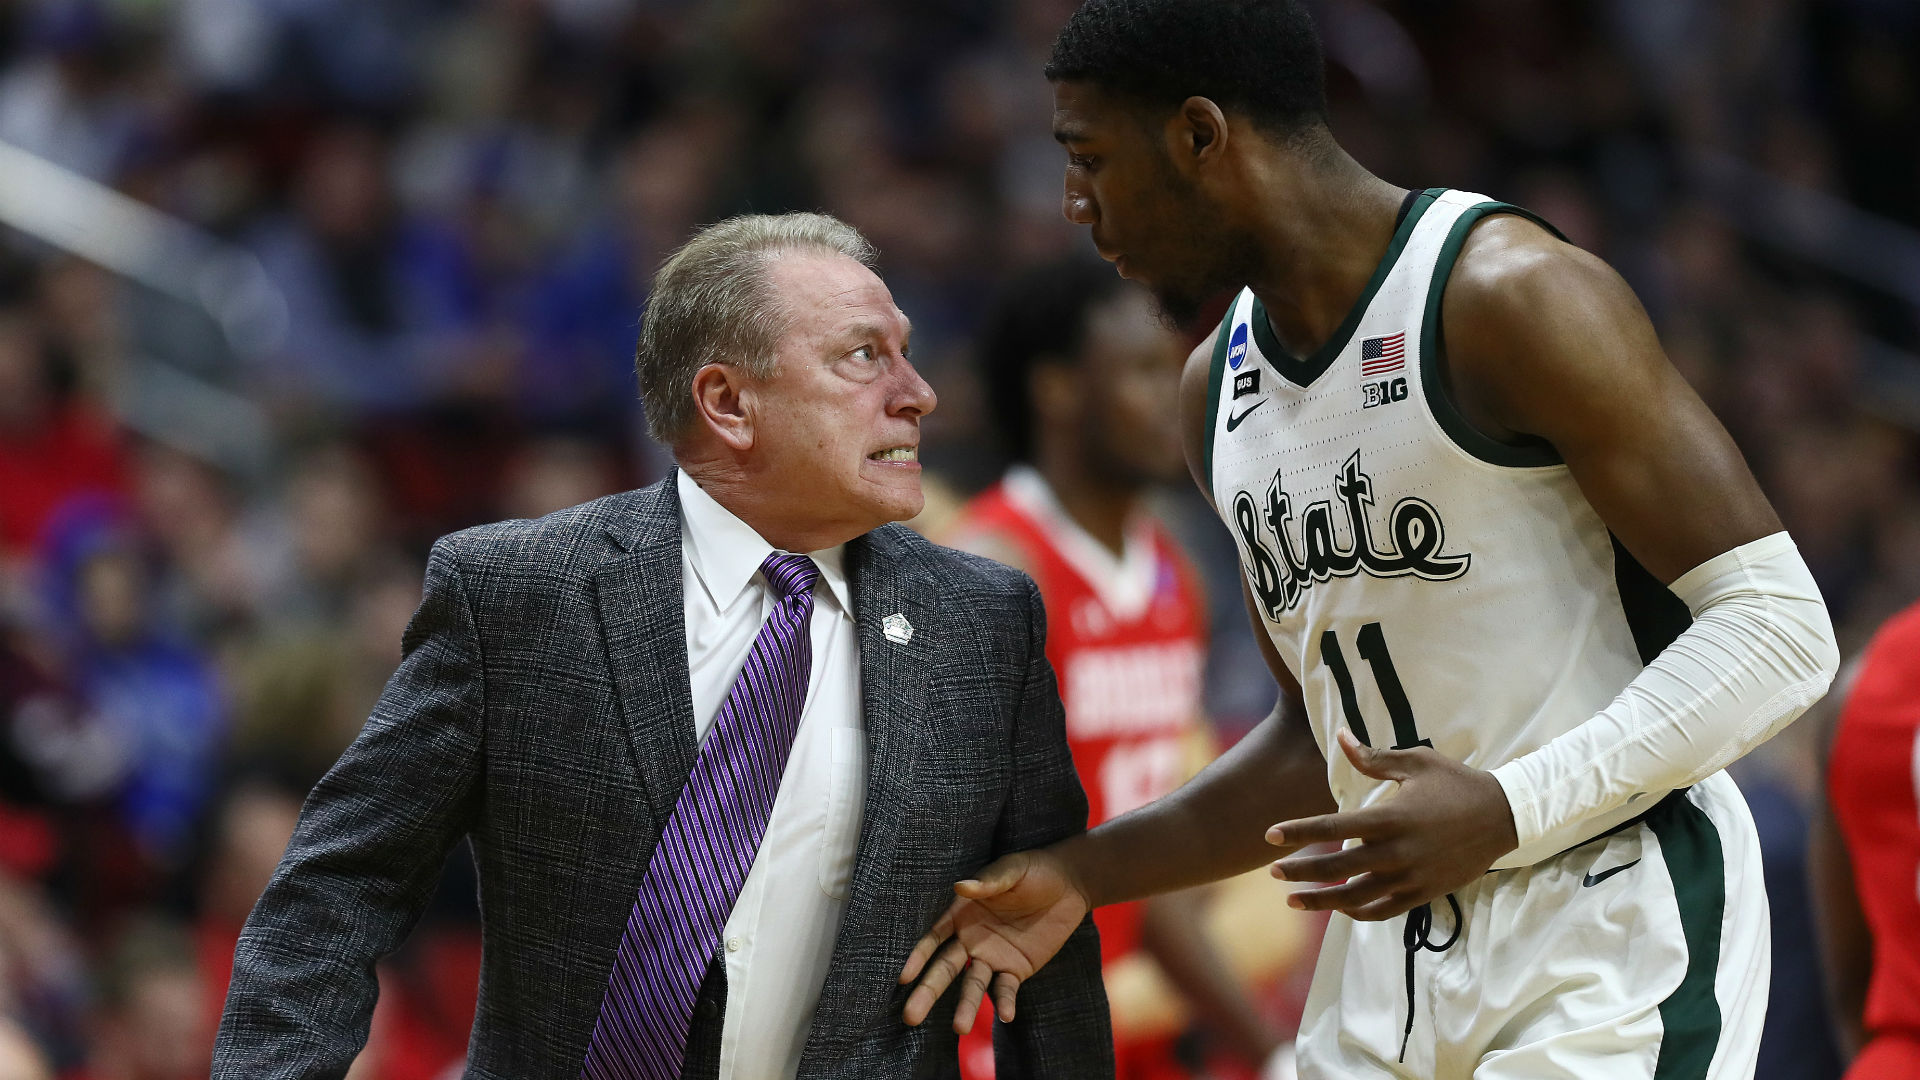 Tom Izzo Addresses Heated Moment With Michigan State Player